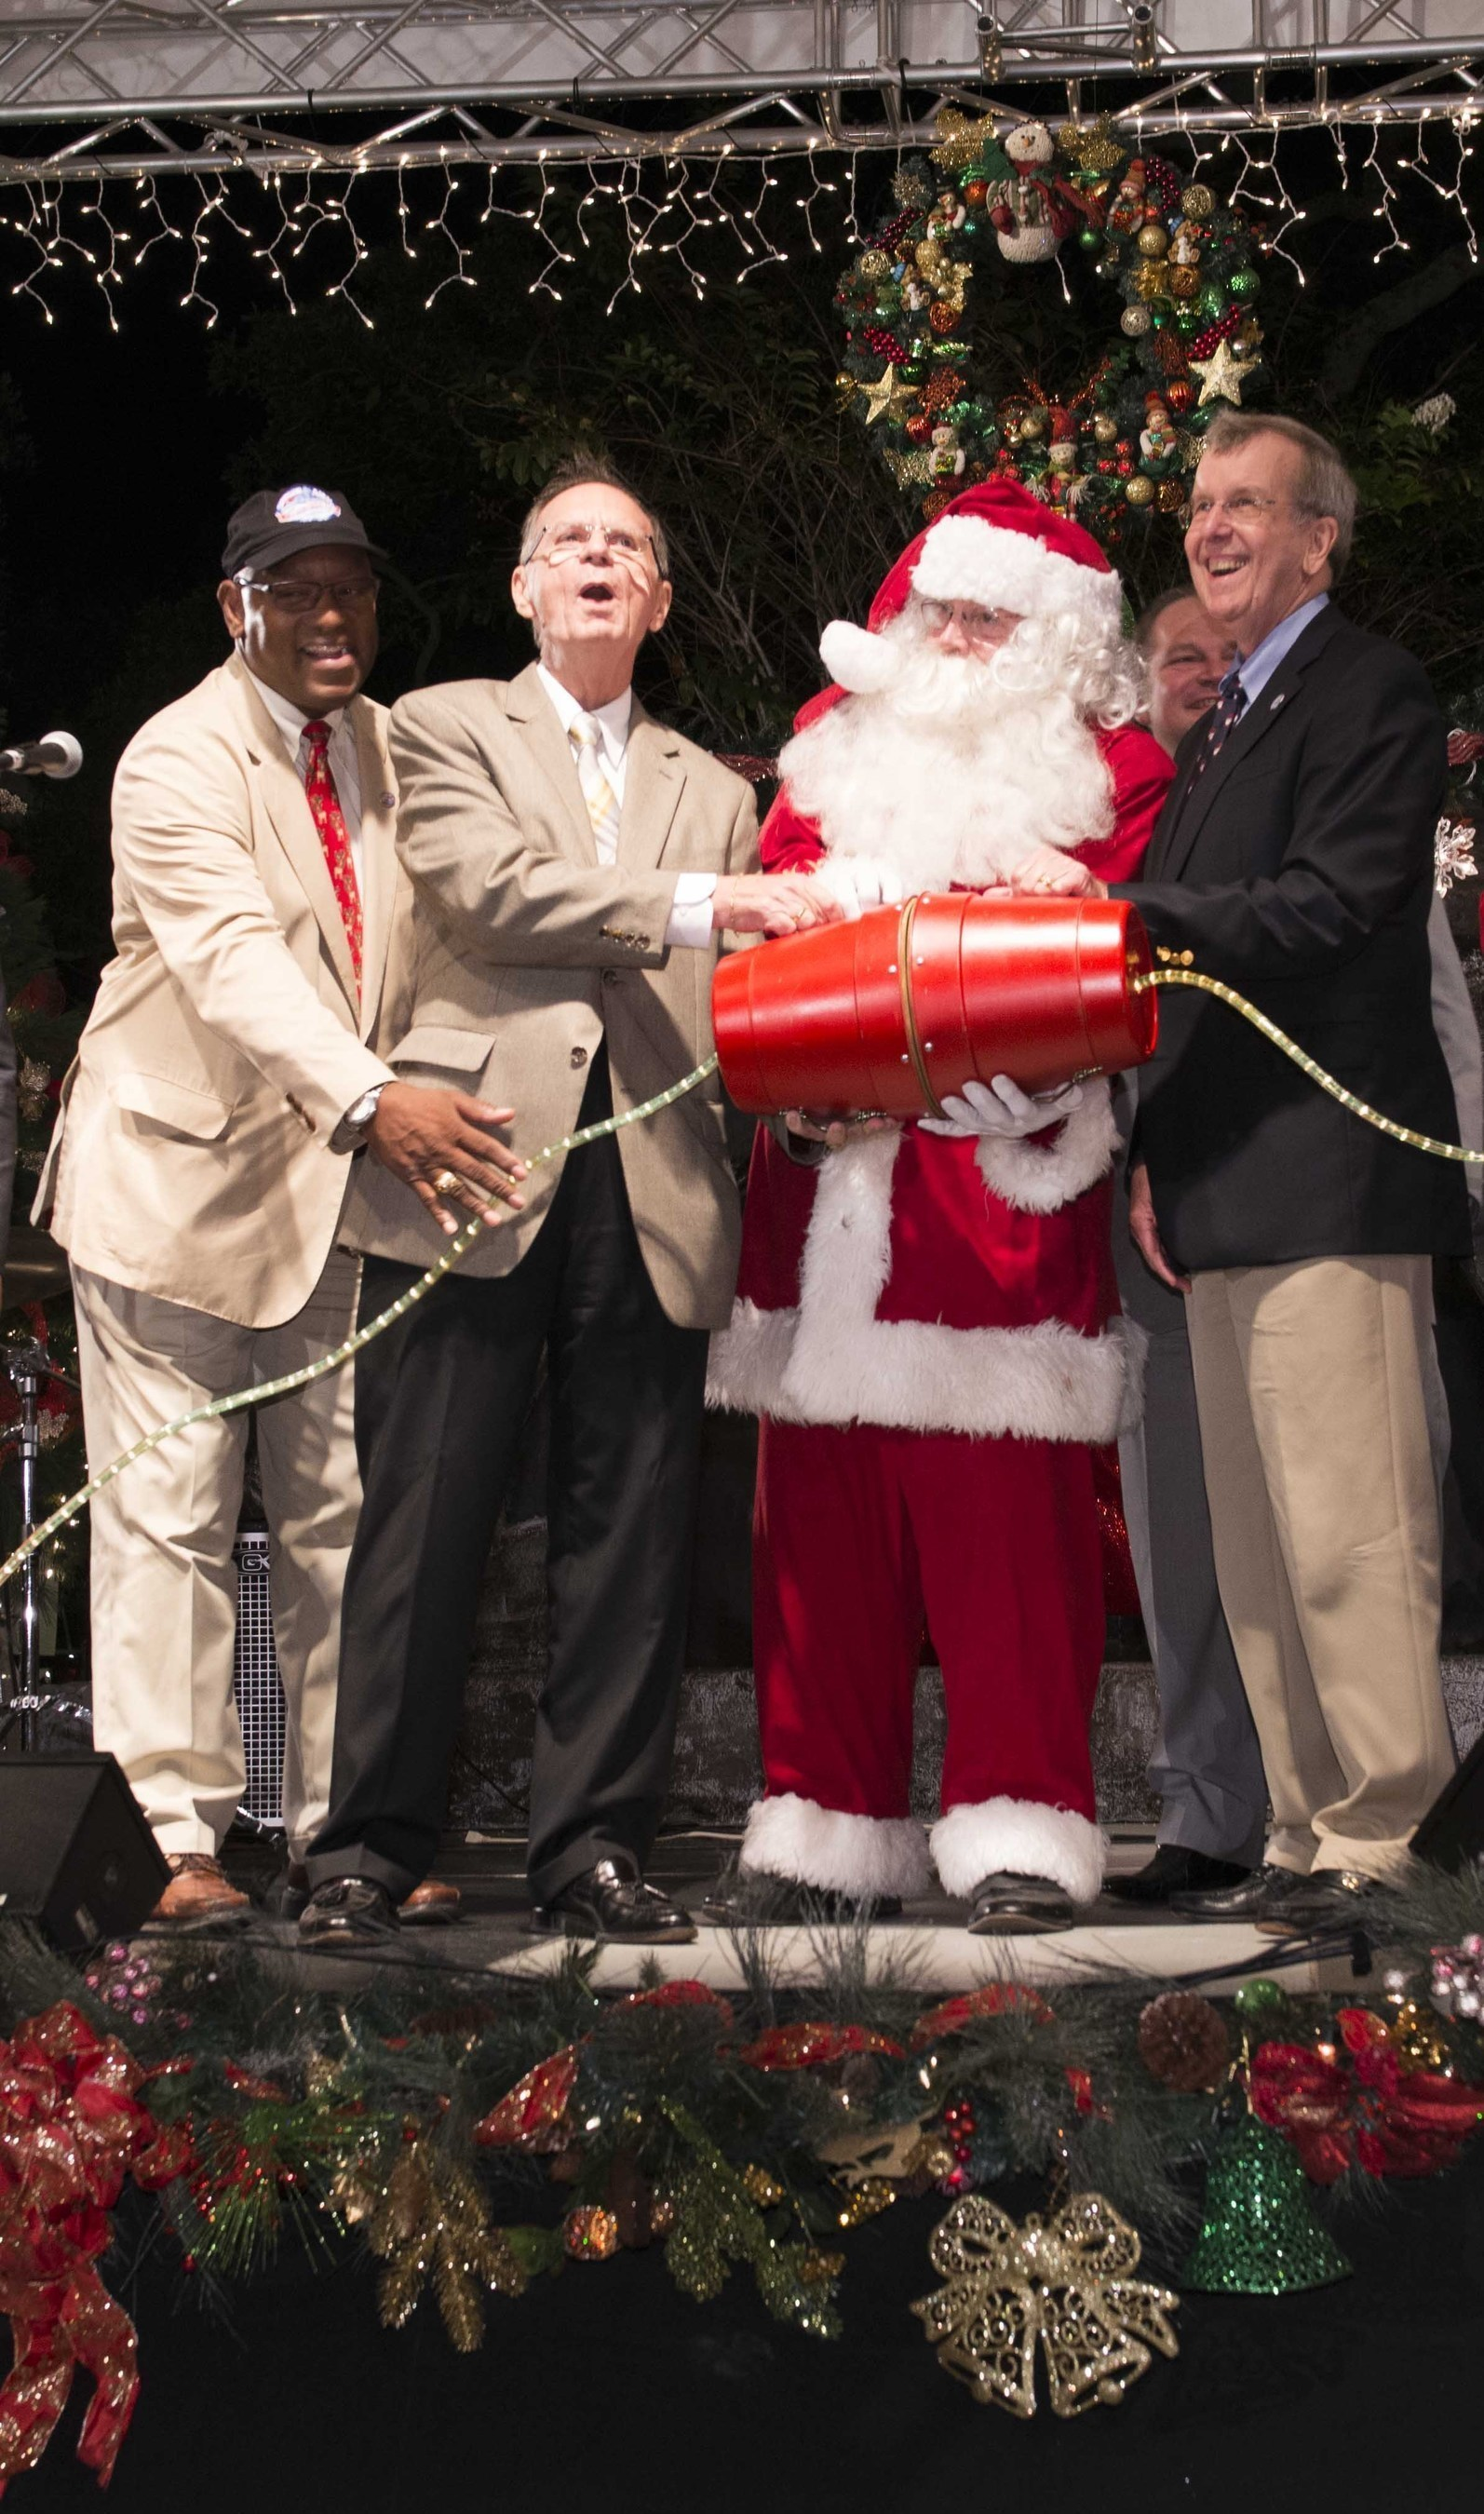 23rd Annual Church of Scientology Co-Sponsored Winter Wonderland Opens to Official Fanfare